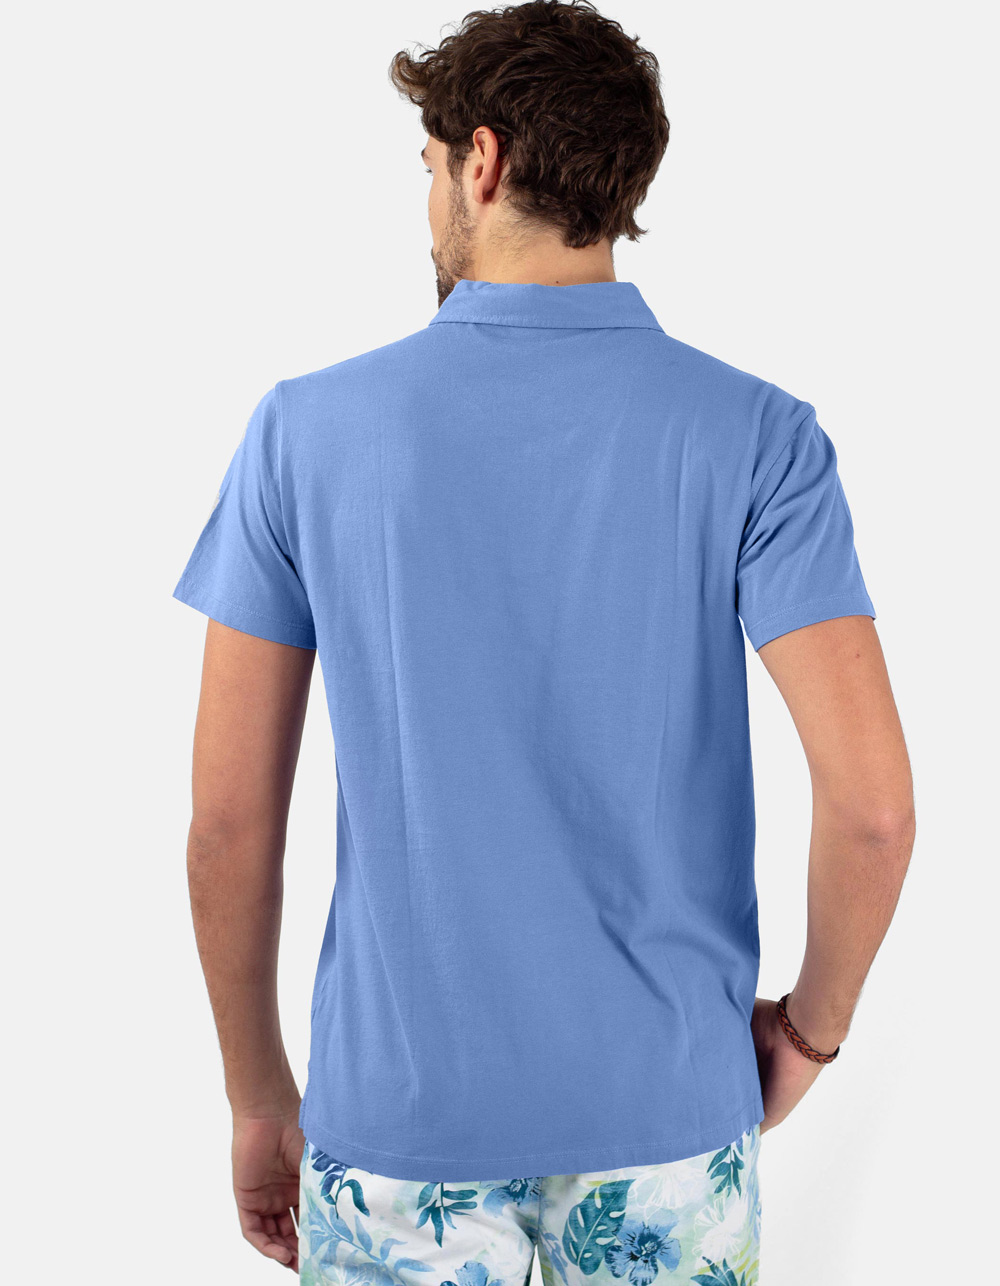 Royal blue pocket polo shirt - Backside